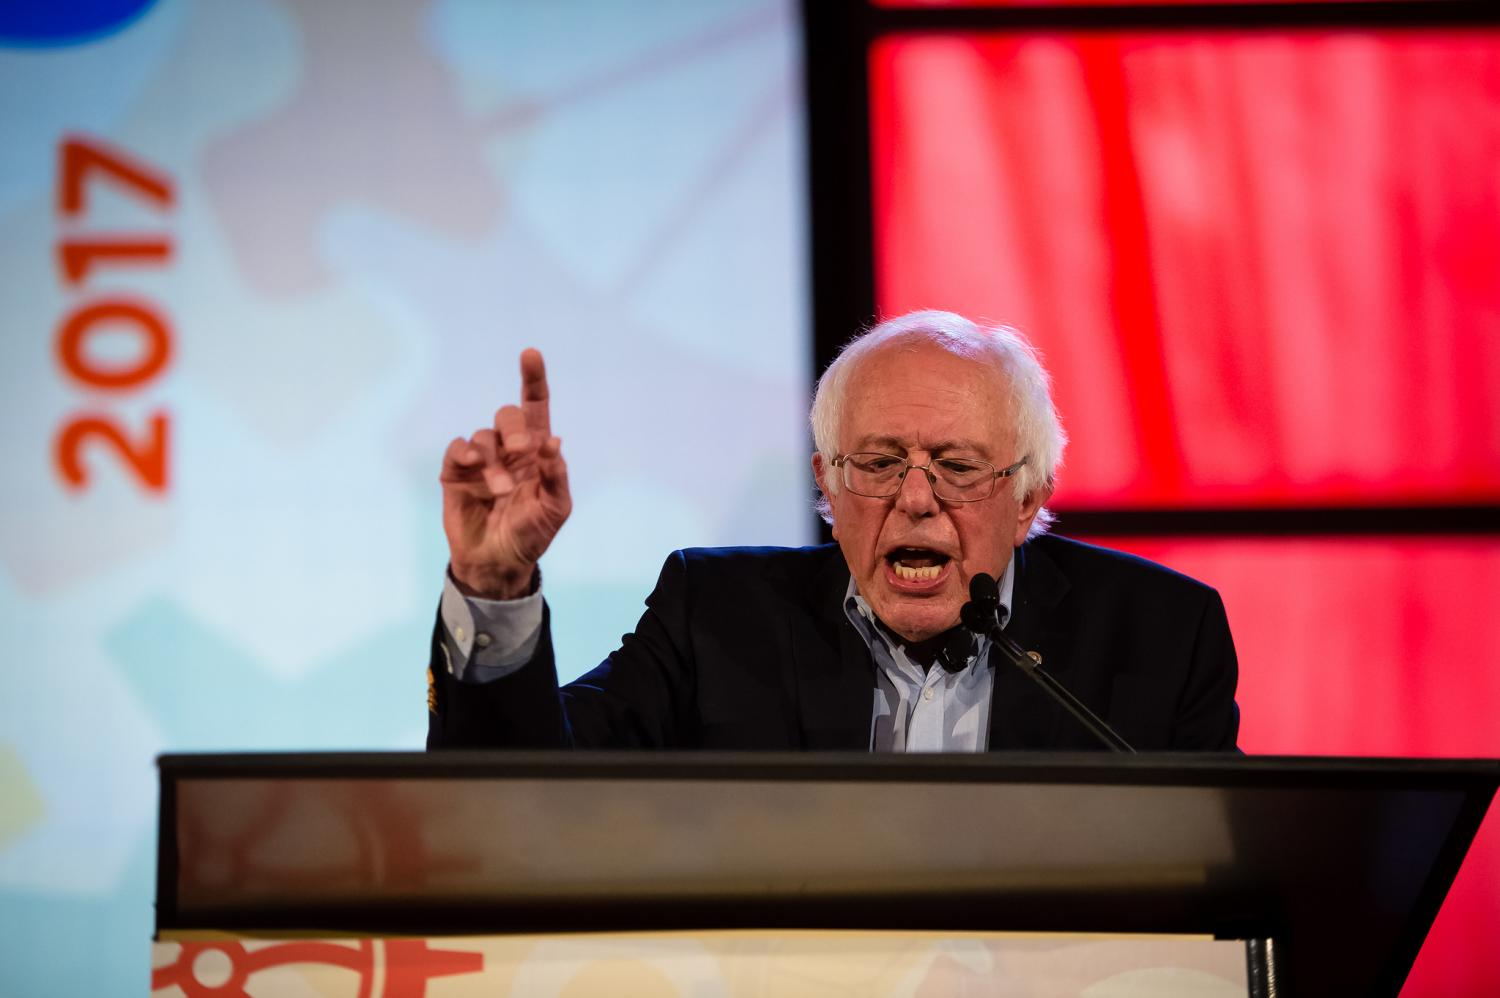 U.S. Sen Bernie Sanders (I-Vt.) speaks at the People's Summit in Chicago. The former presidential candidate addressed future steps for the Democratic Party after its 2016 election defeat.